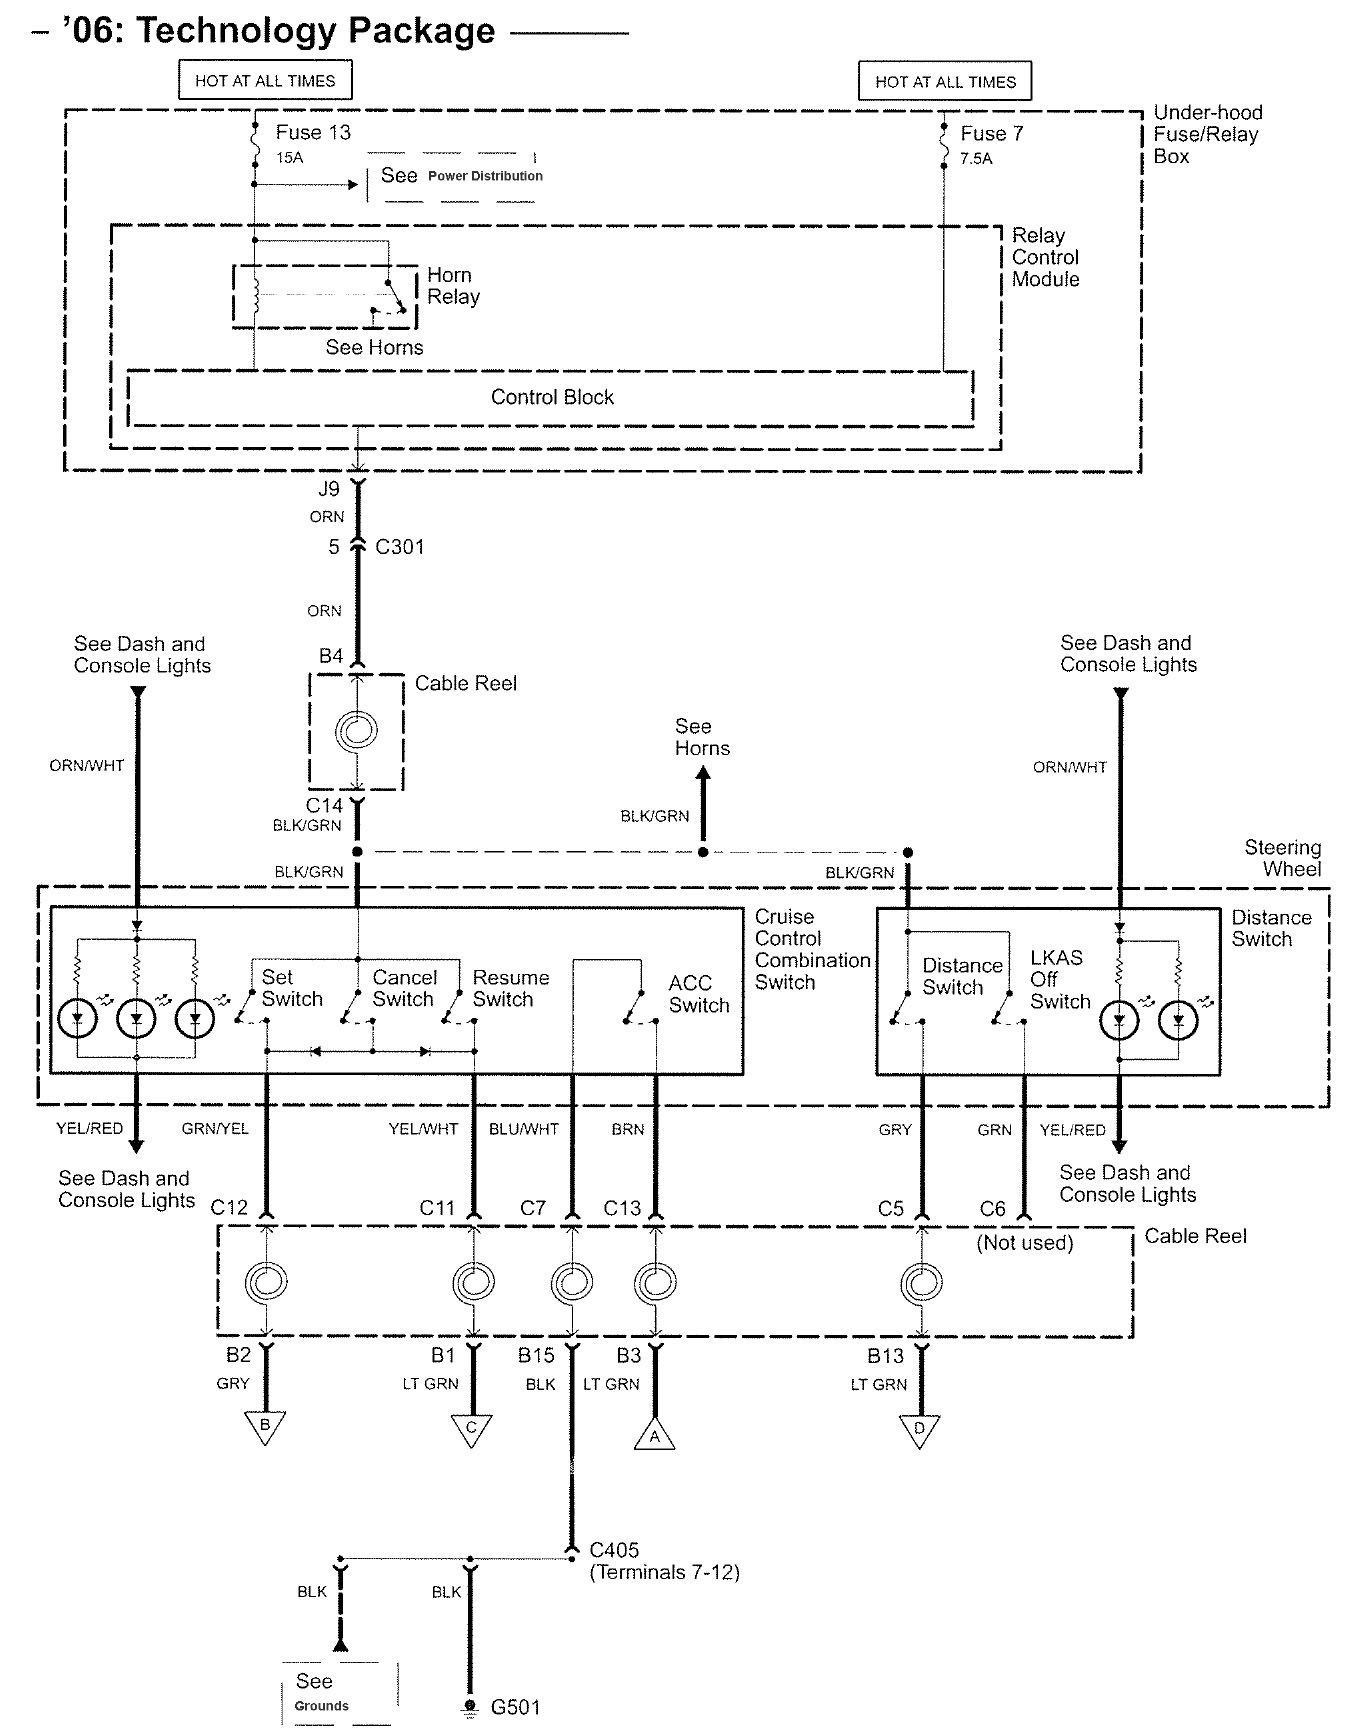 acura rl wiring diagram speed control v5 1 2006 ltr 450 wiring diagram ltr wiring diagrams collection ltr 450 wiring schematic at bakdesigns.co